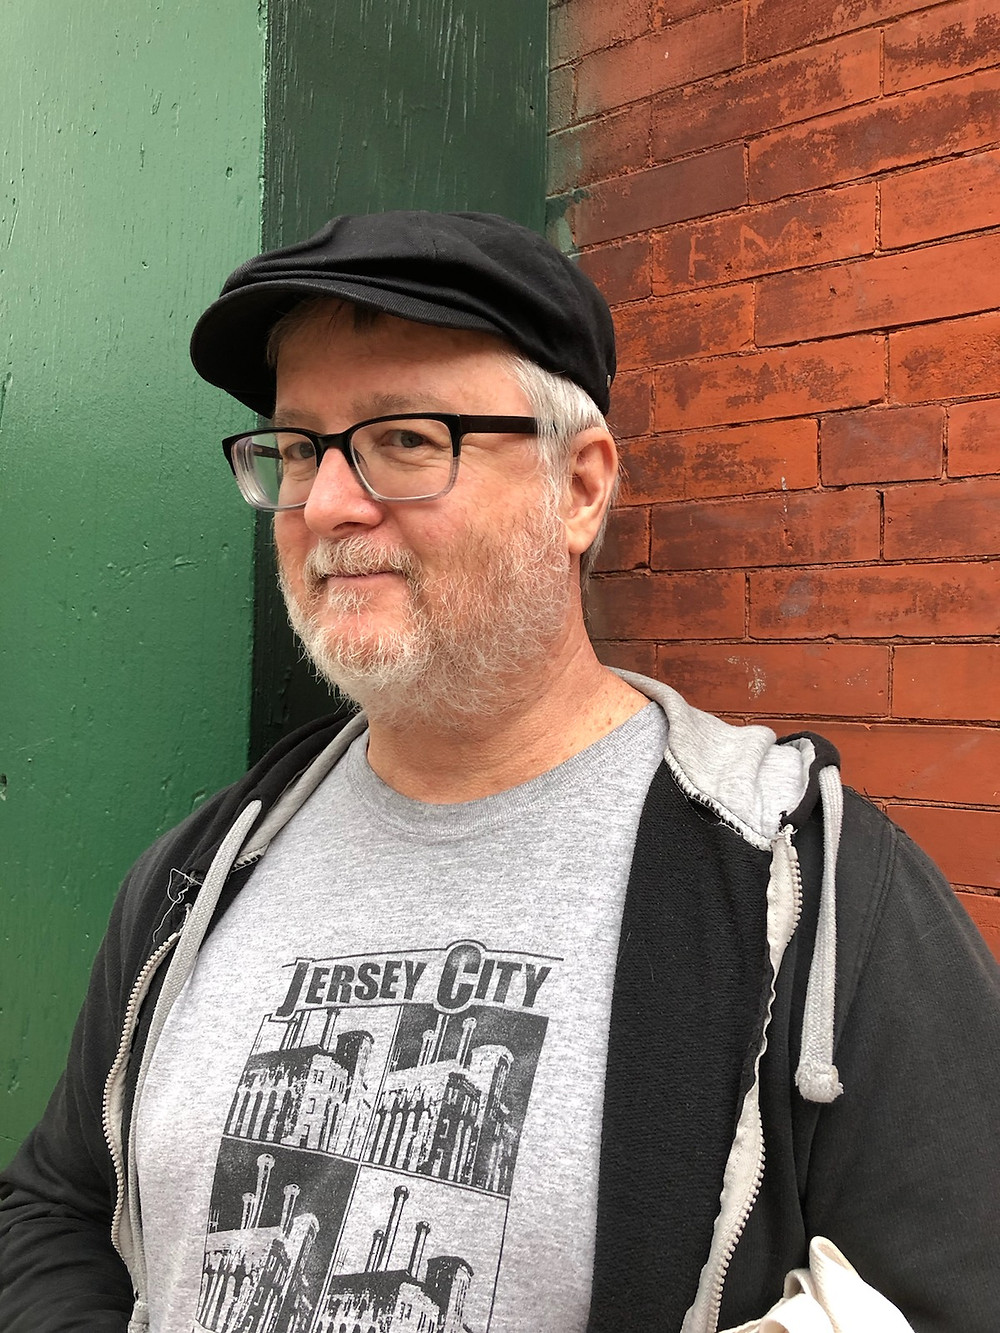 Jack is shown standing against a wall, part red brick & part wood painted 2 shades of green. He has a grey beard & hair. Is wearing black chunky glasses, black cap, a black unzipped hoodie, and a grey Jersey City t-shirt with 4 images of The Powerhouse Building.